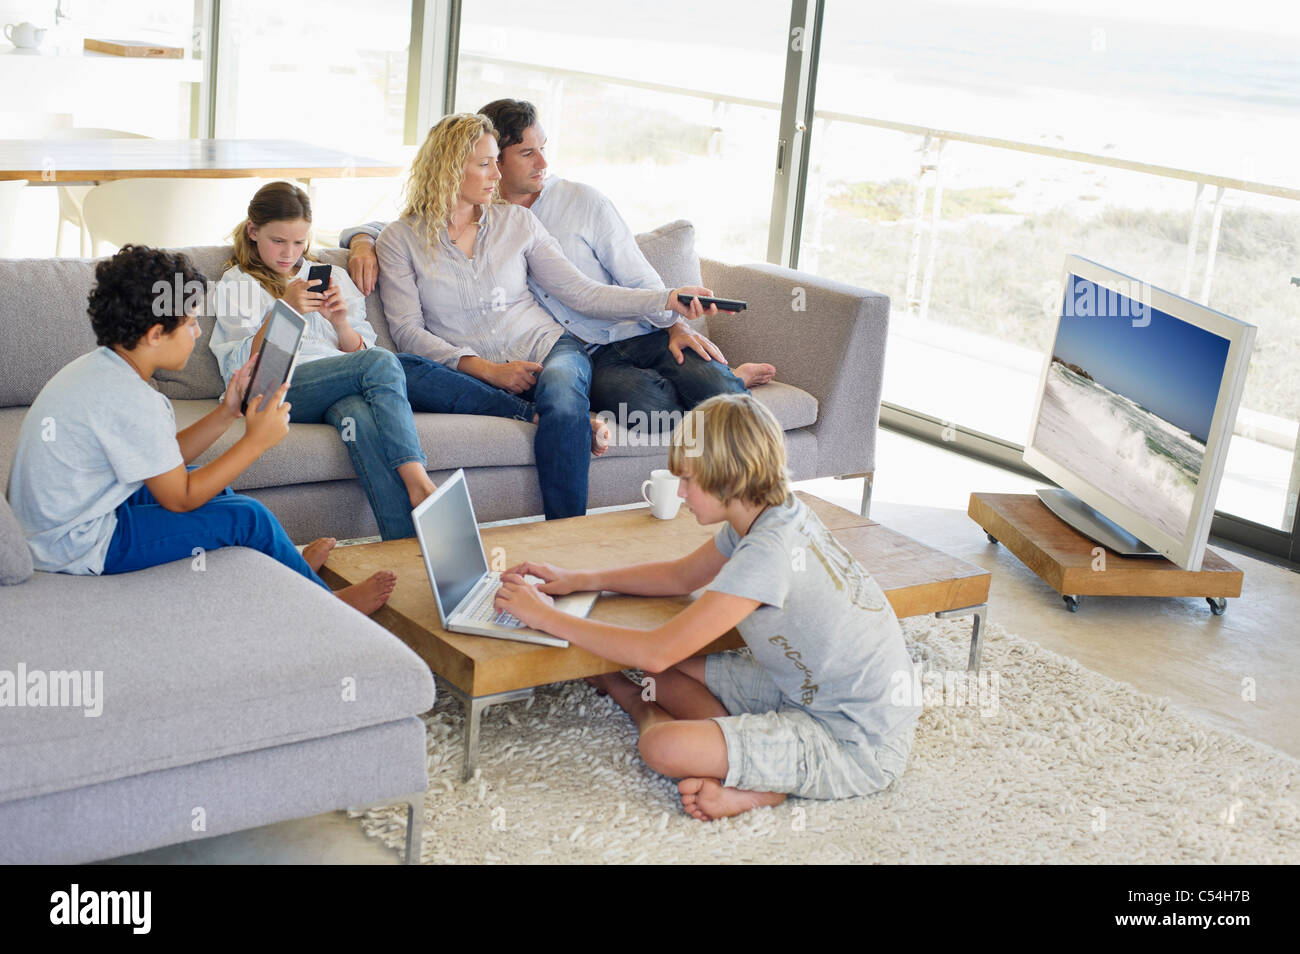 Couple watching television set while their children busy in different activities Stock Photo